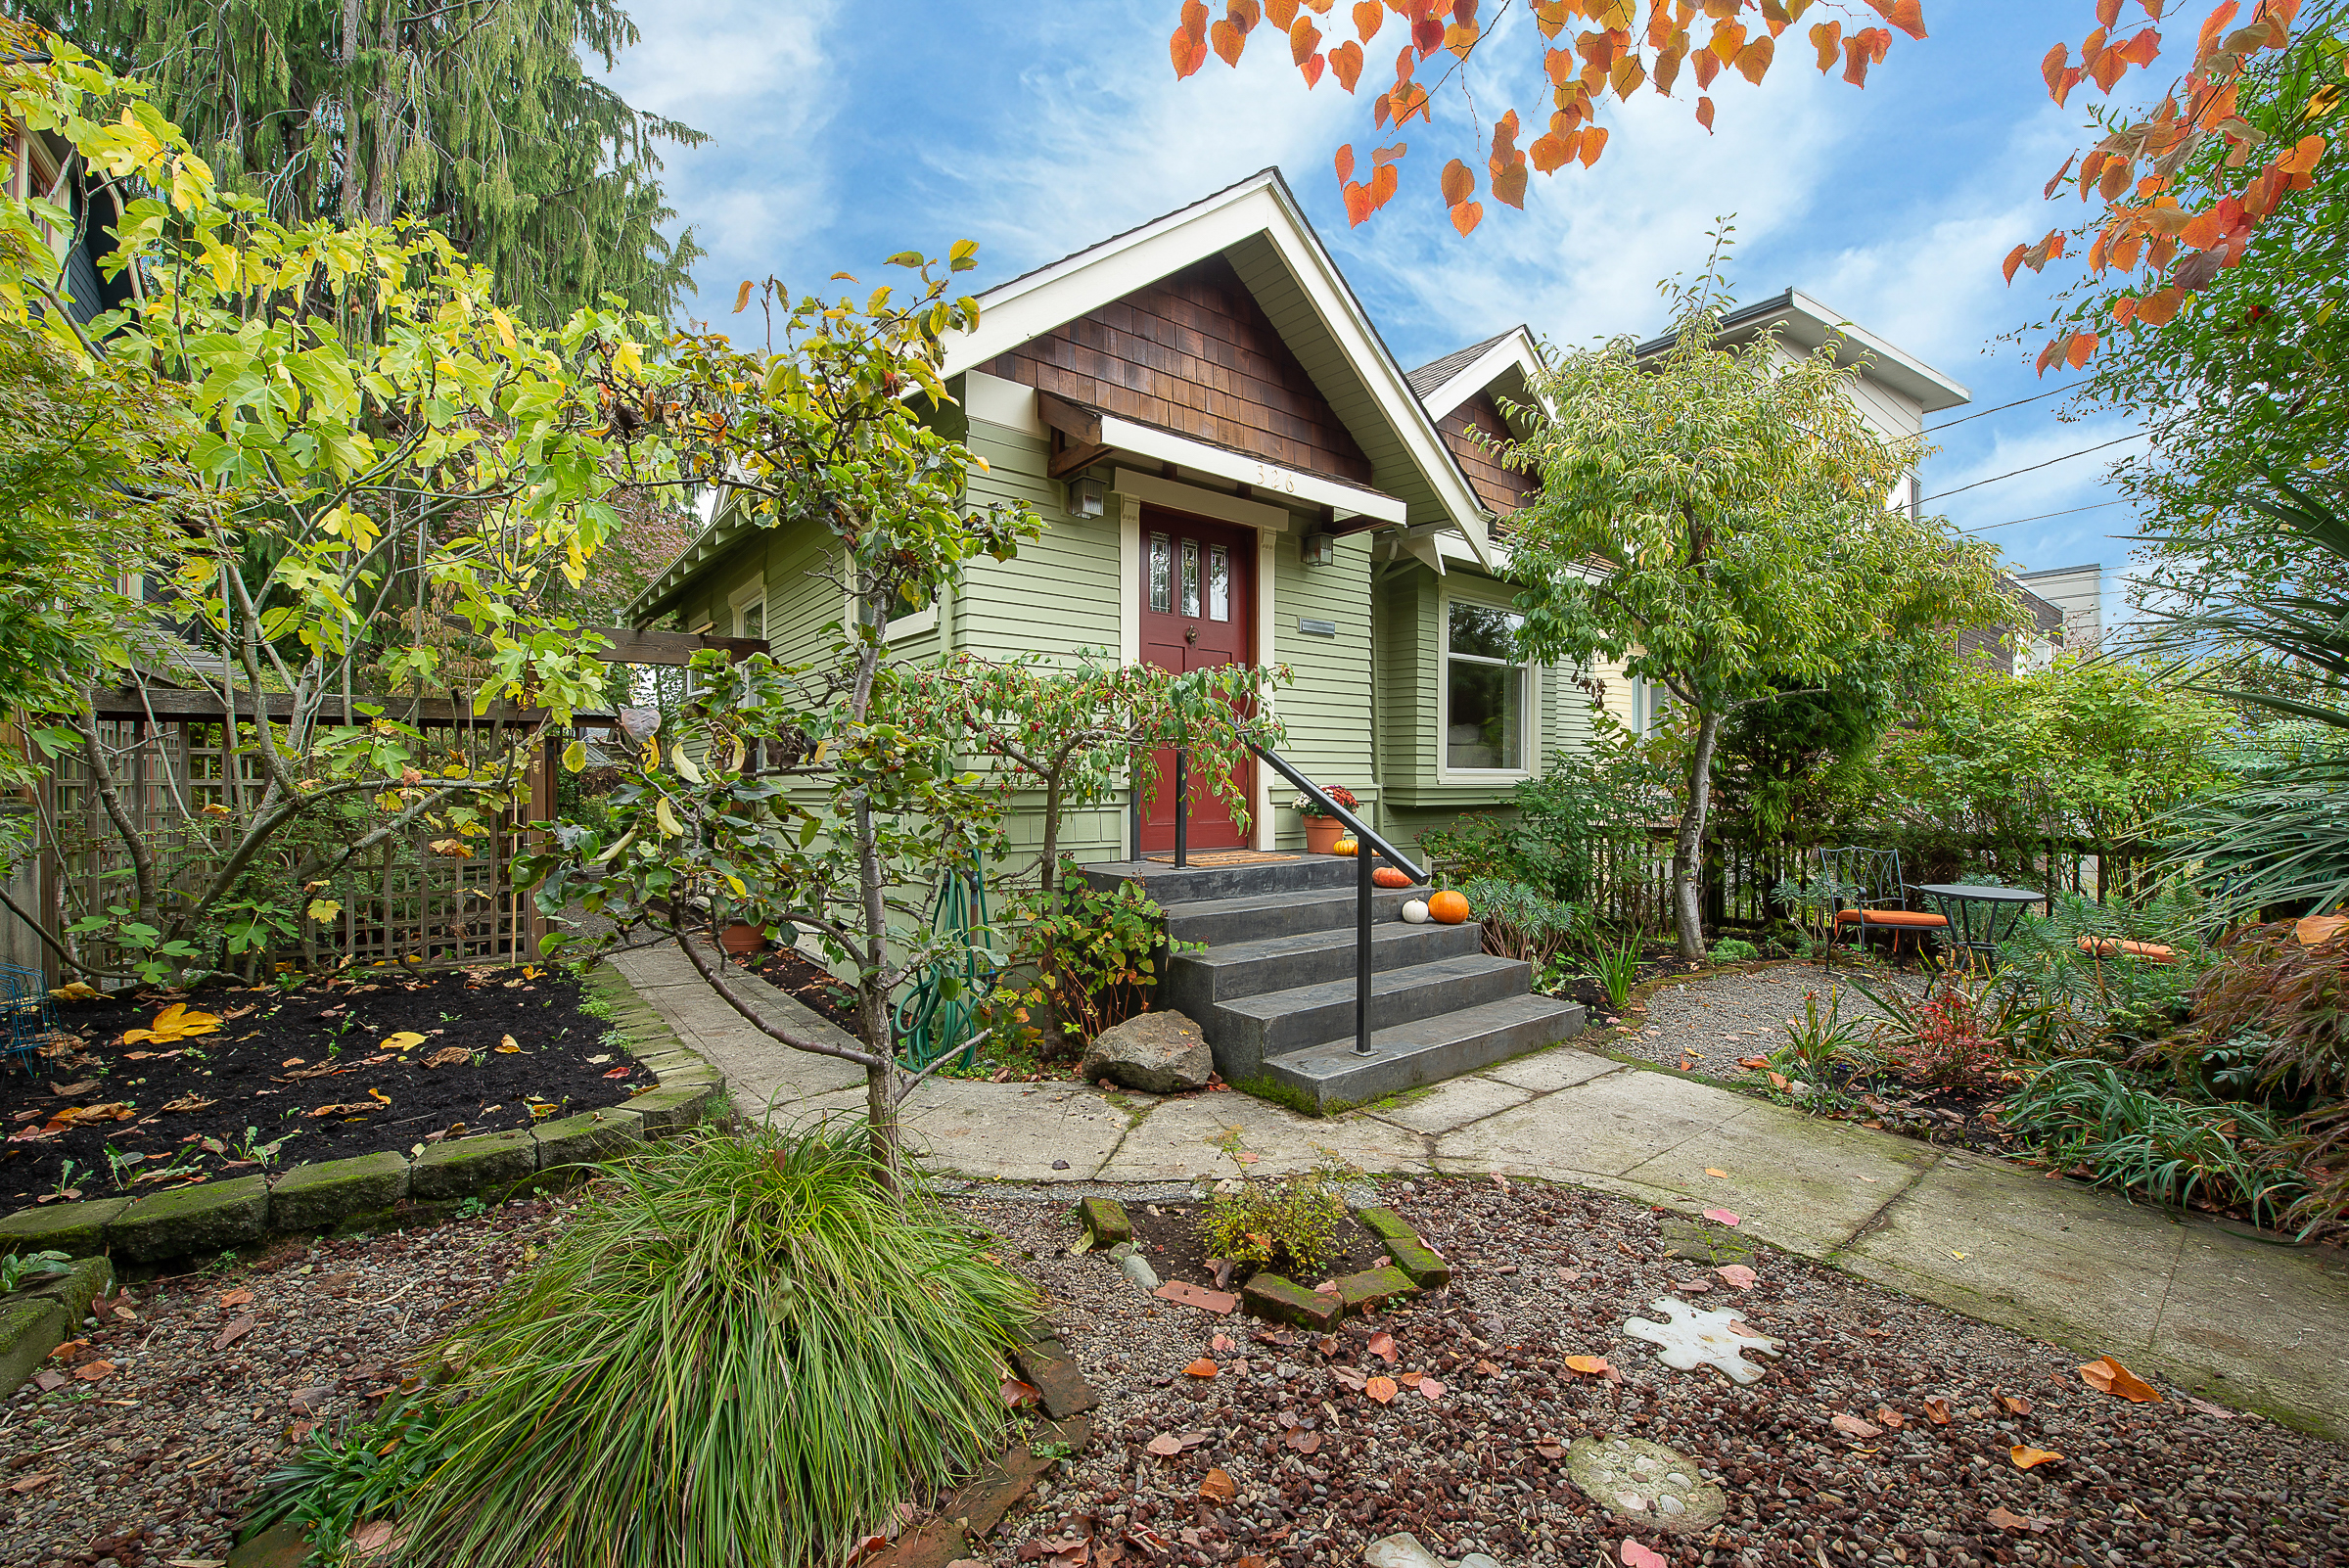 The Phinney Ridge Craftsman - Where tranquility and charm meet…